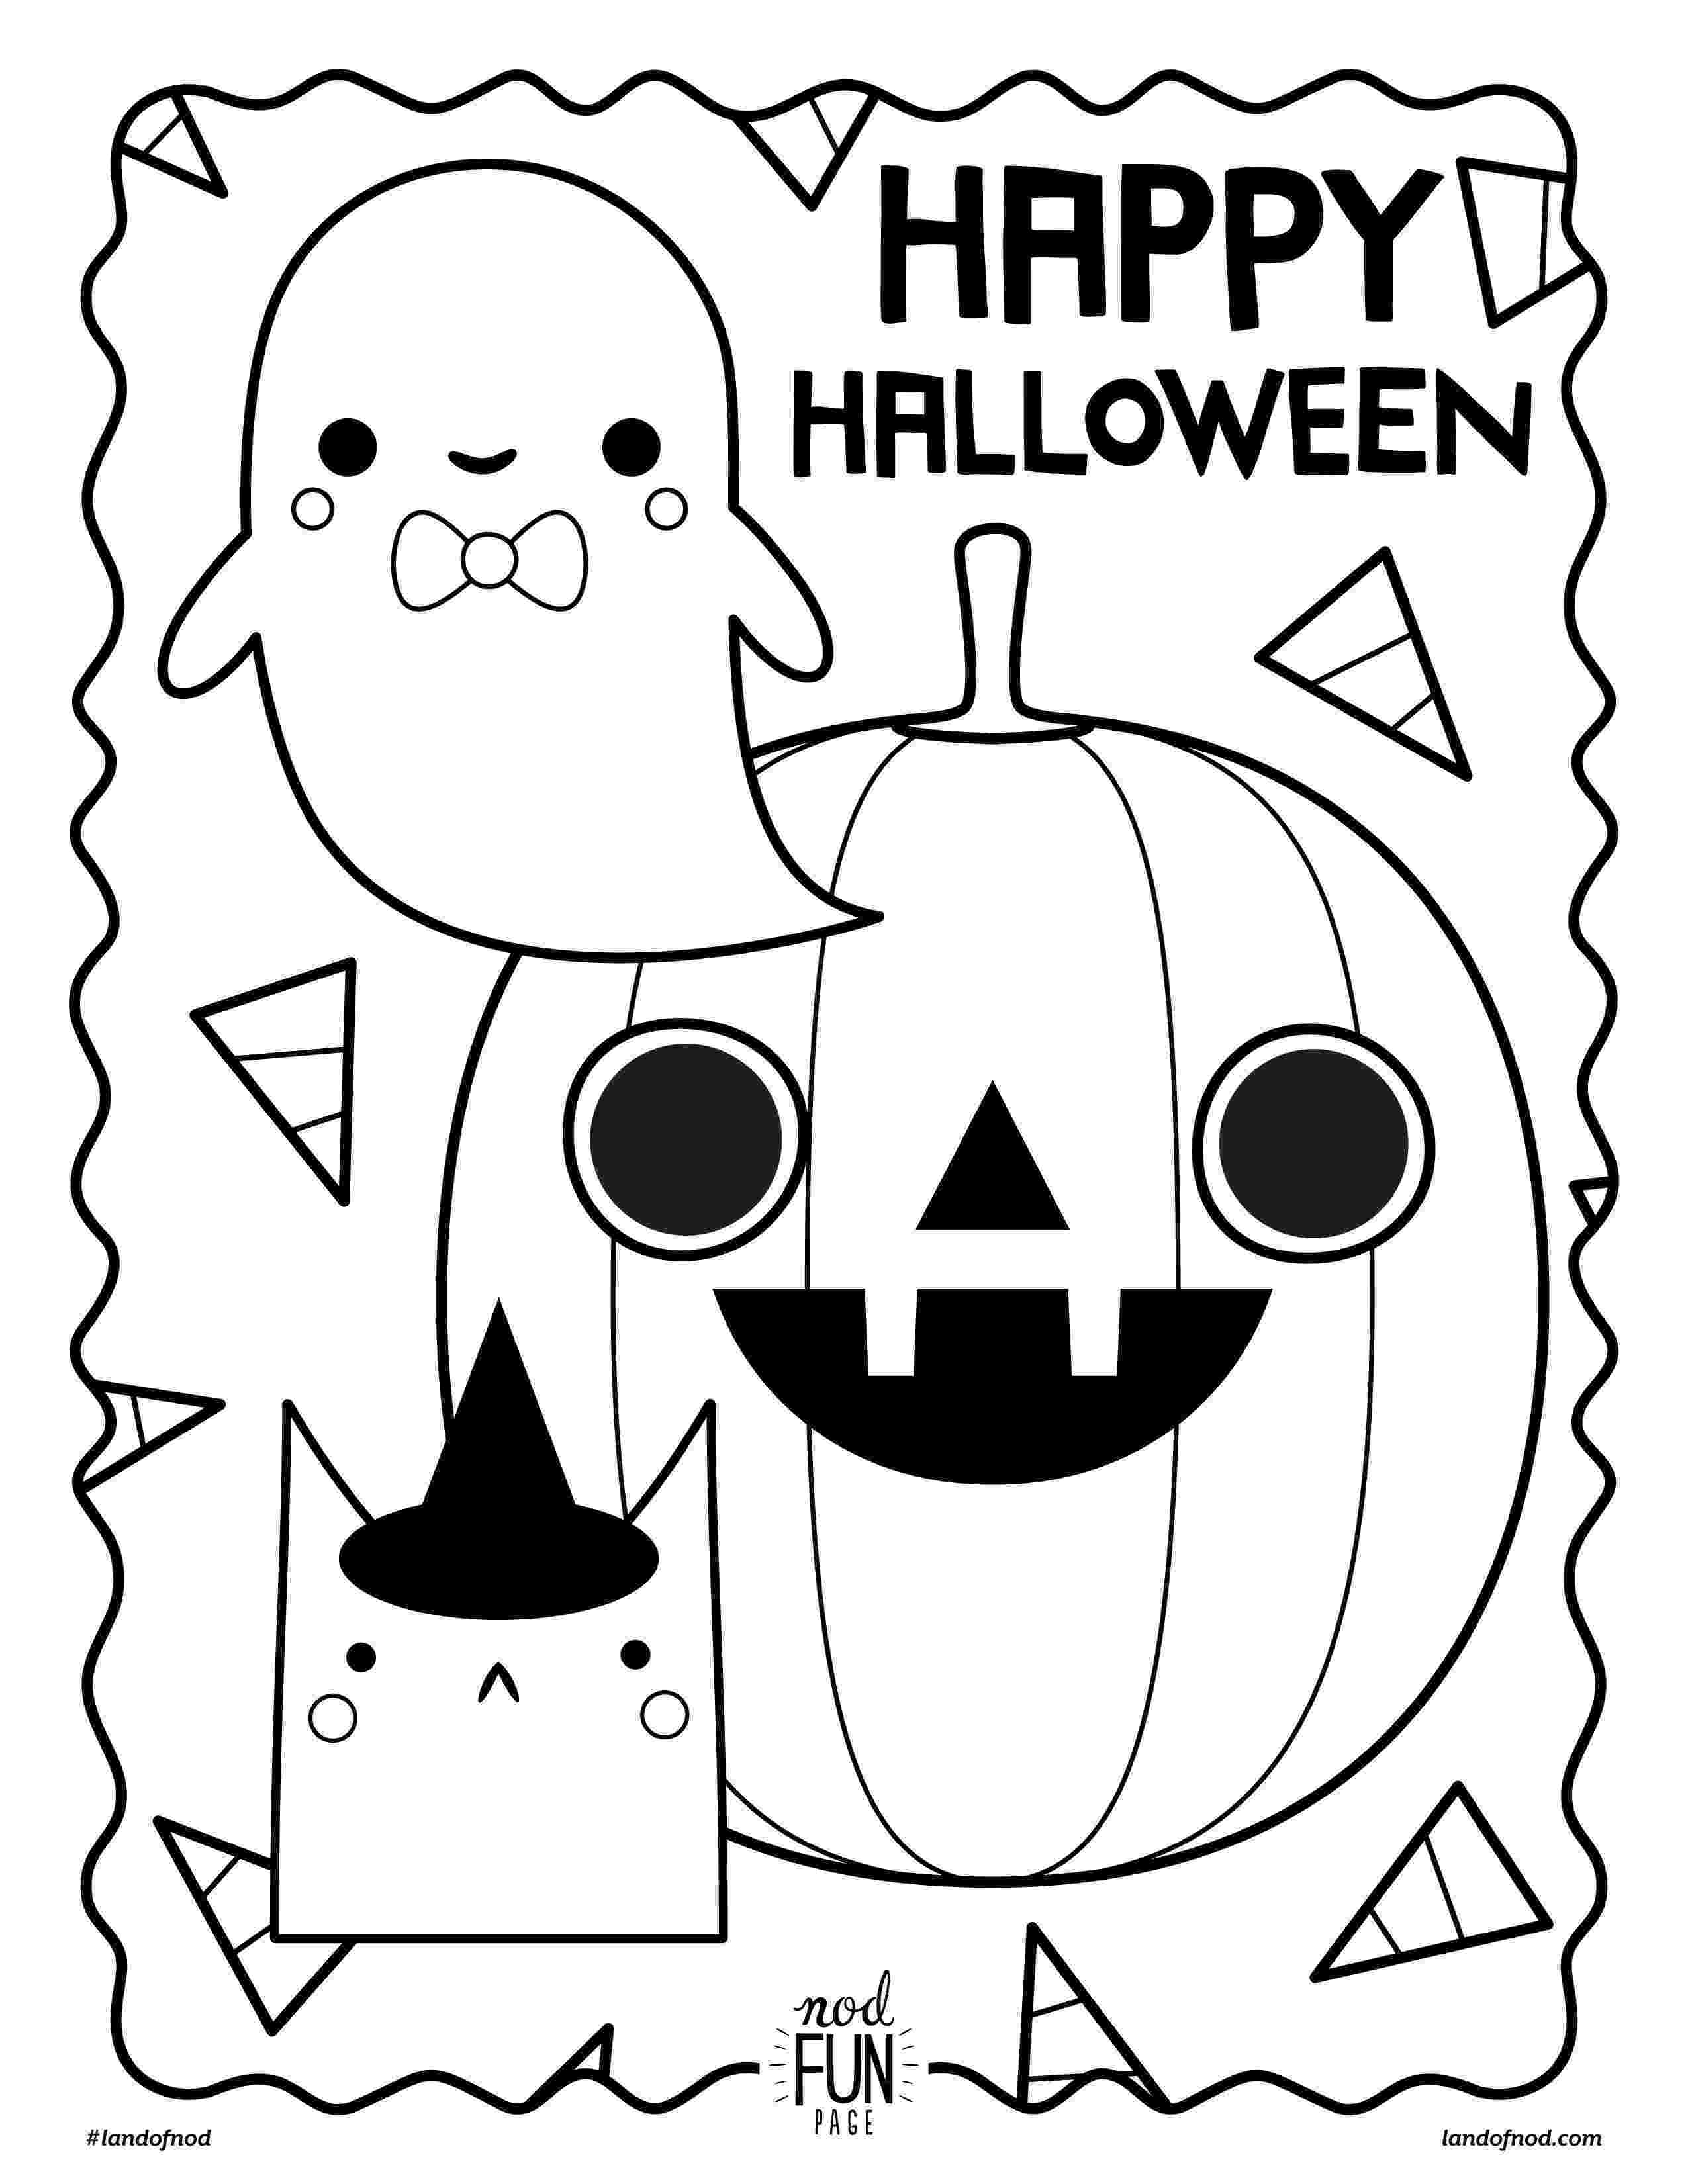 coloring pages for preschoolers halloween 24 free printable halloween coloring pages for kids preschoolers for halloween coloring pages